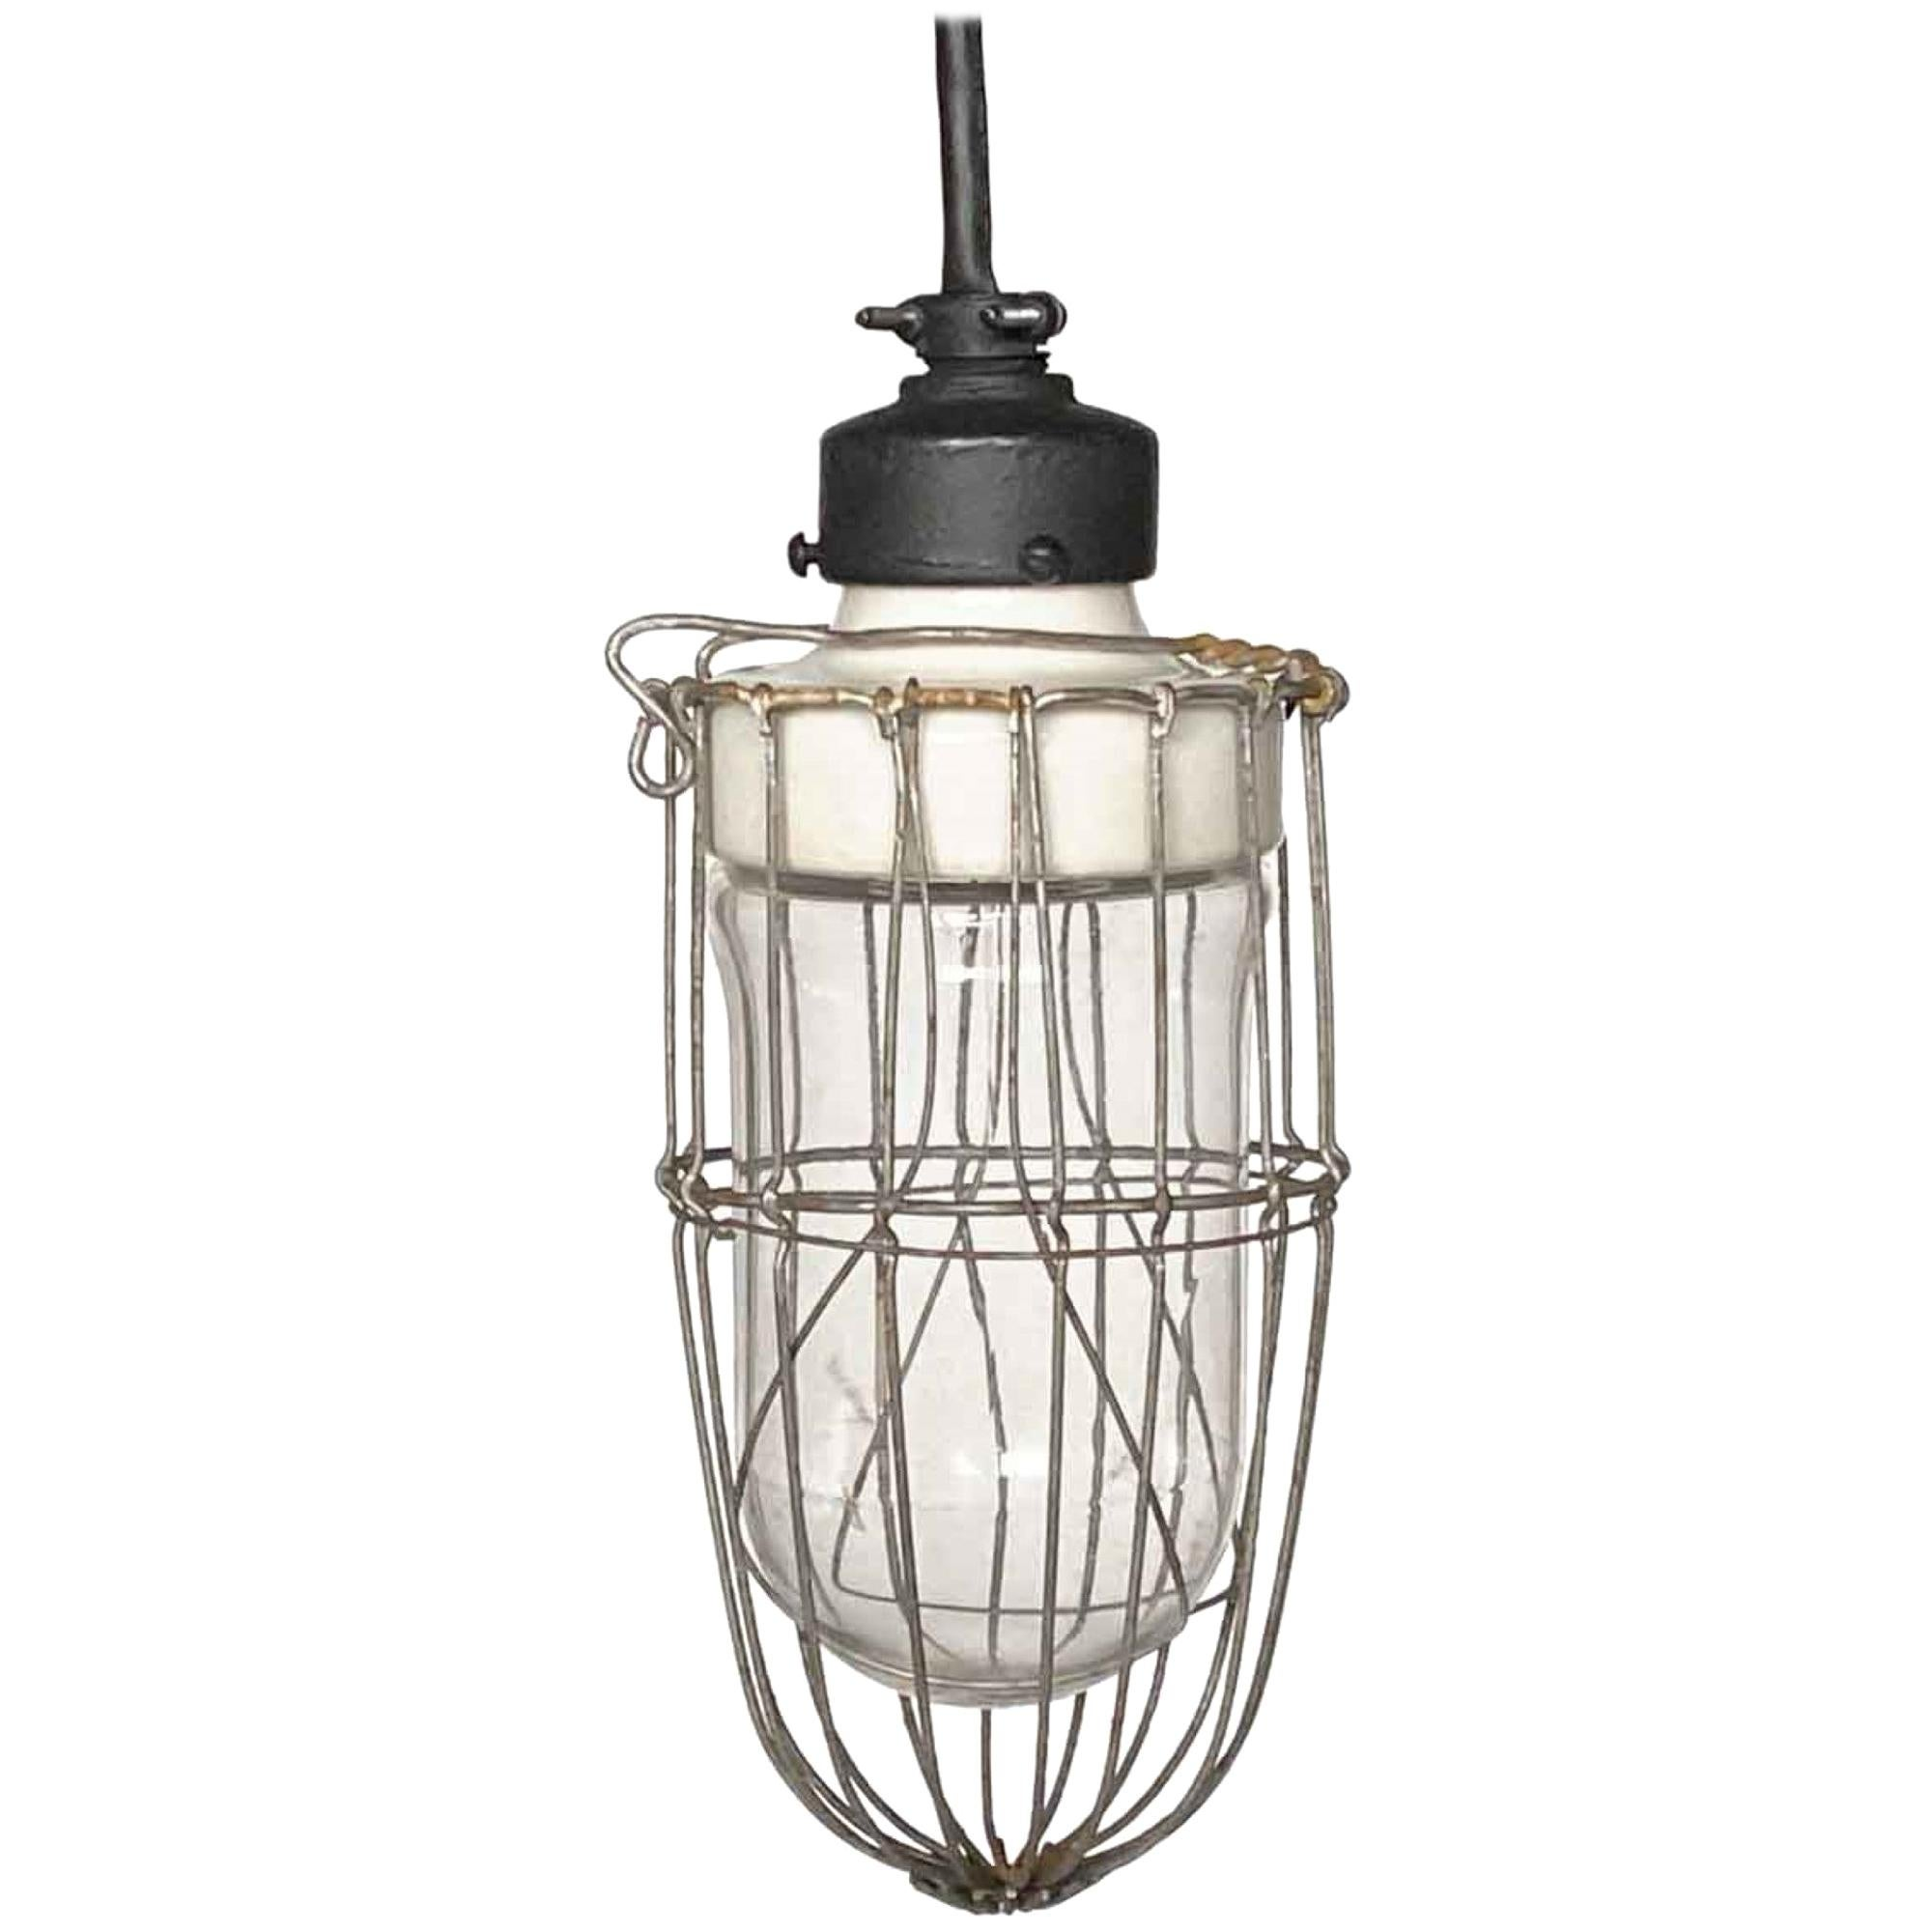 1920s Industrial Cage Pendant Light with Porcelain Fixture and Steel Cage